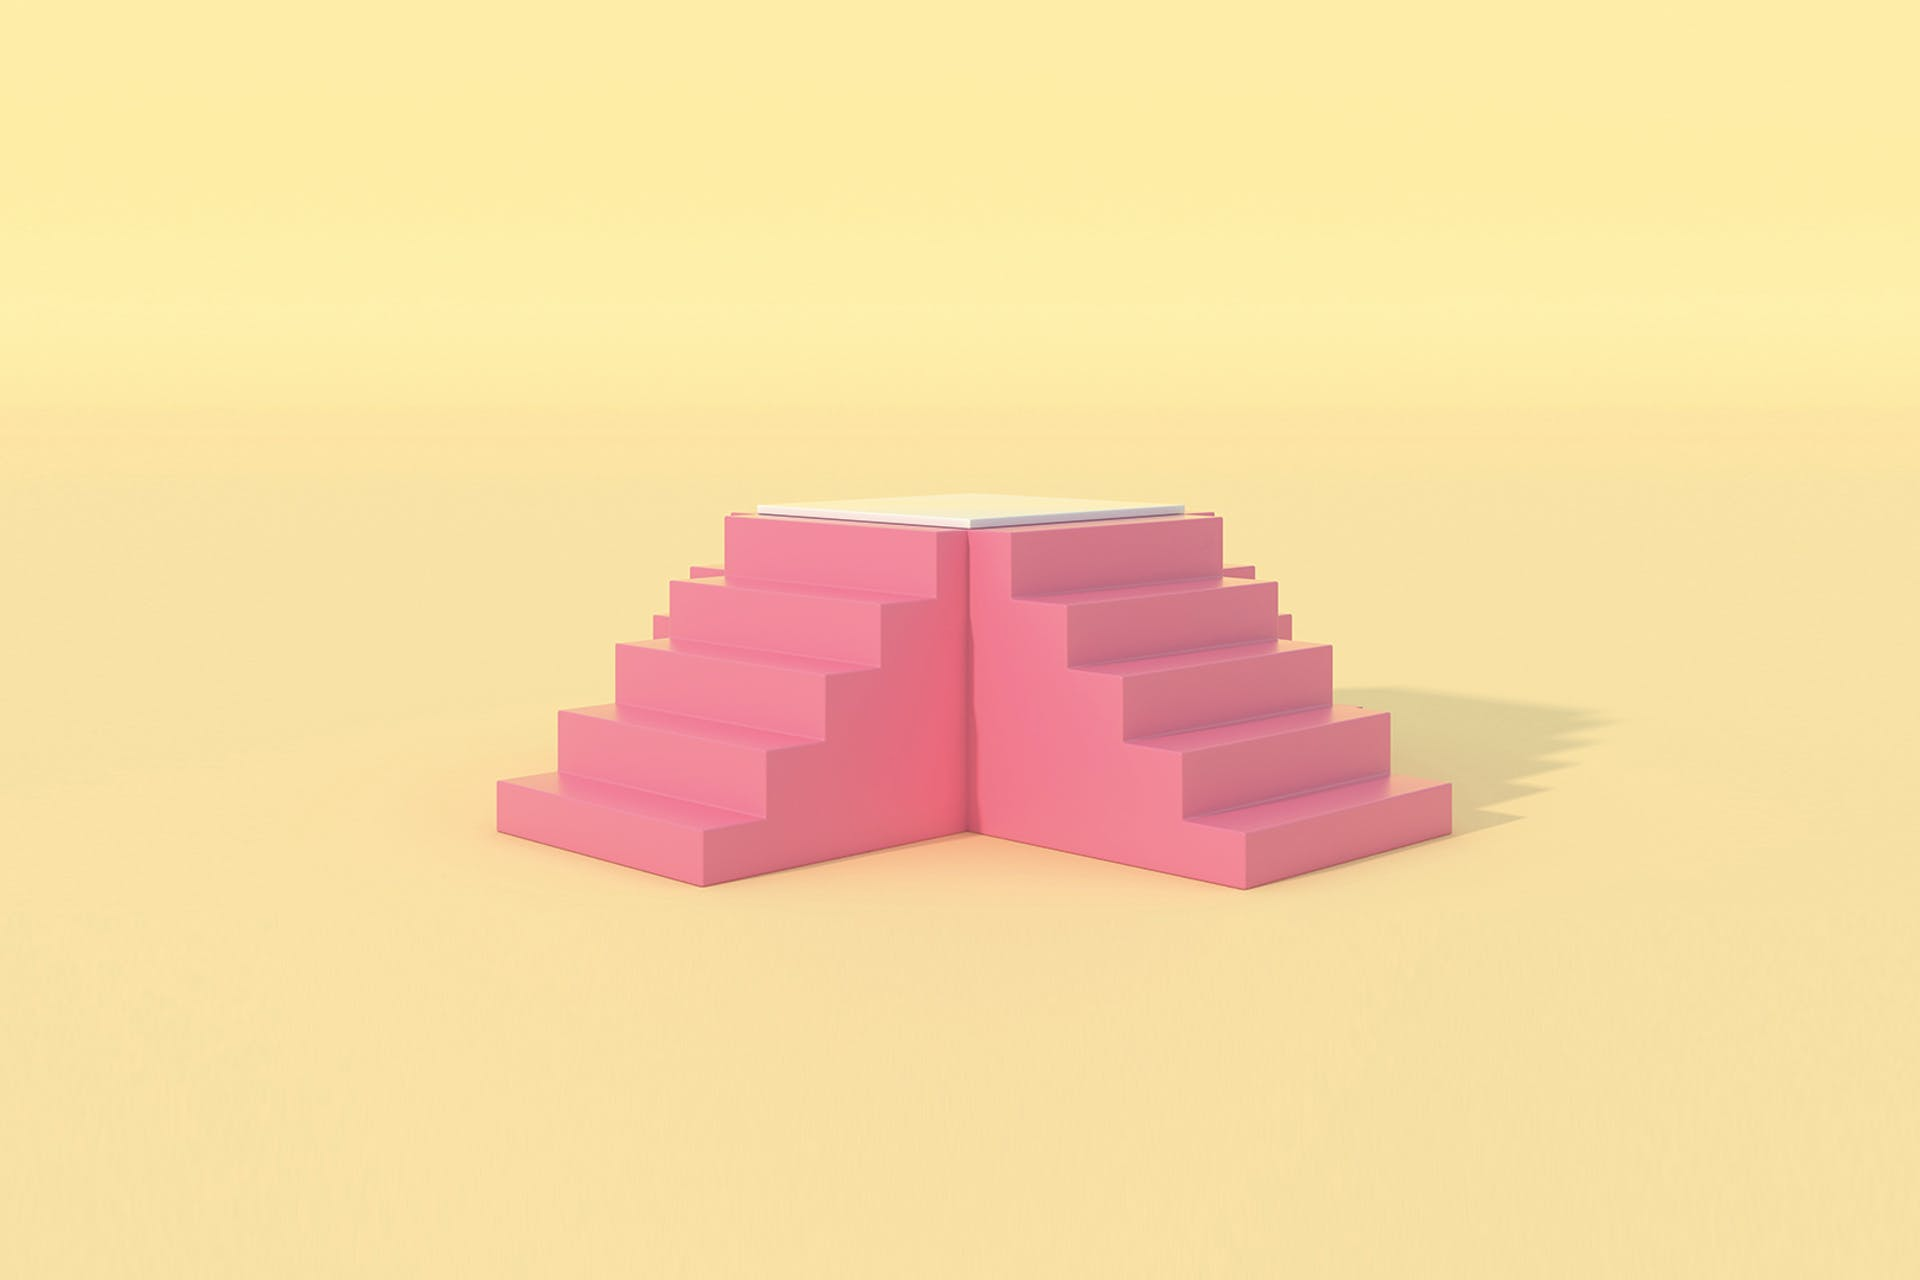 A 3D rendering of four sets of stairs that all meet to form a platform. This image is being used on a blog that describes the steps involved in building brand equity.